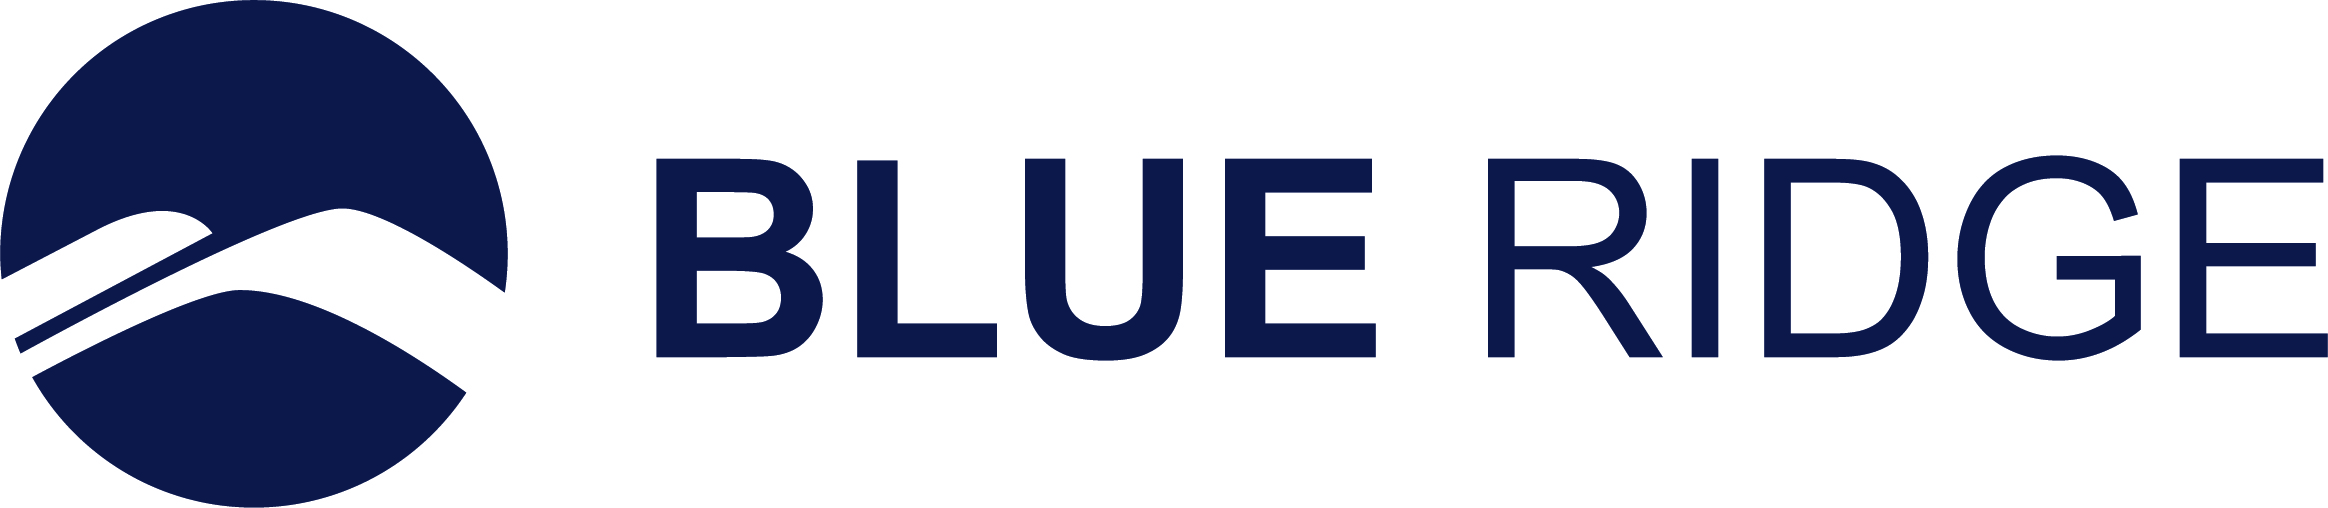 Blue Ridge Sees Automating Supply Chain Planning with Price Optimization Bring Increased Efficiency